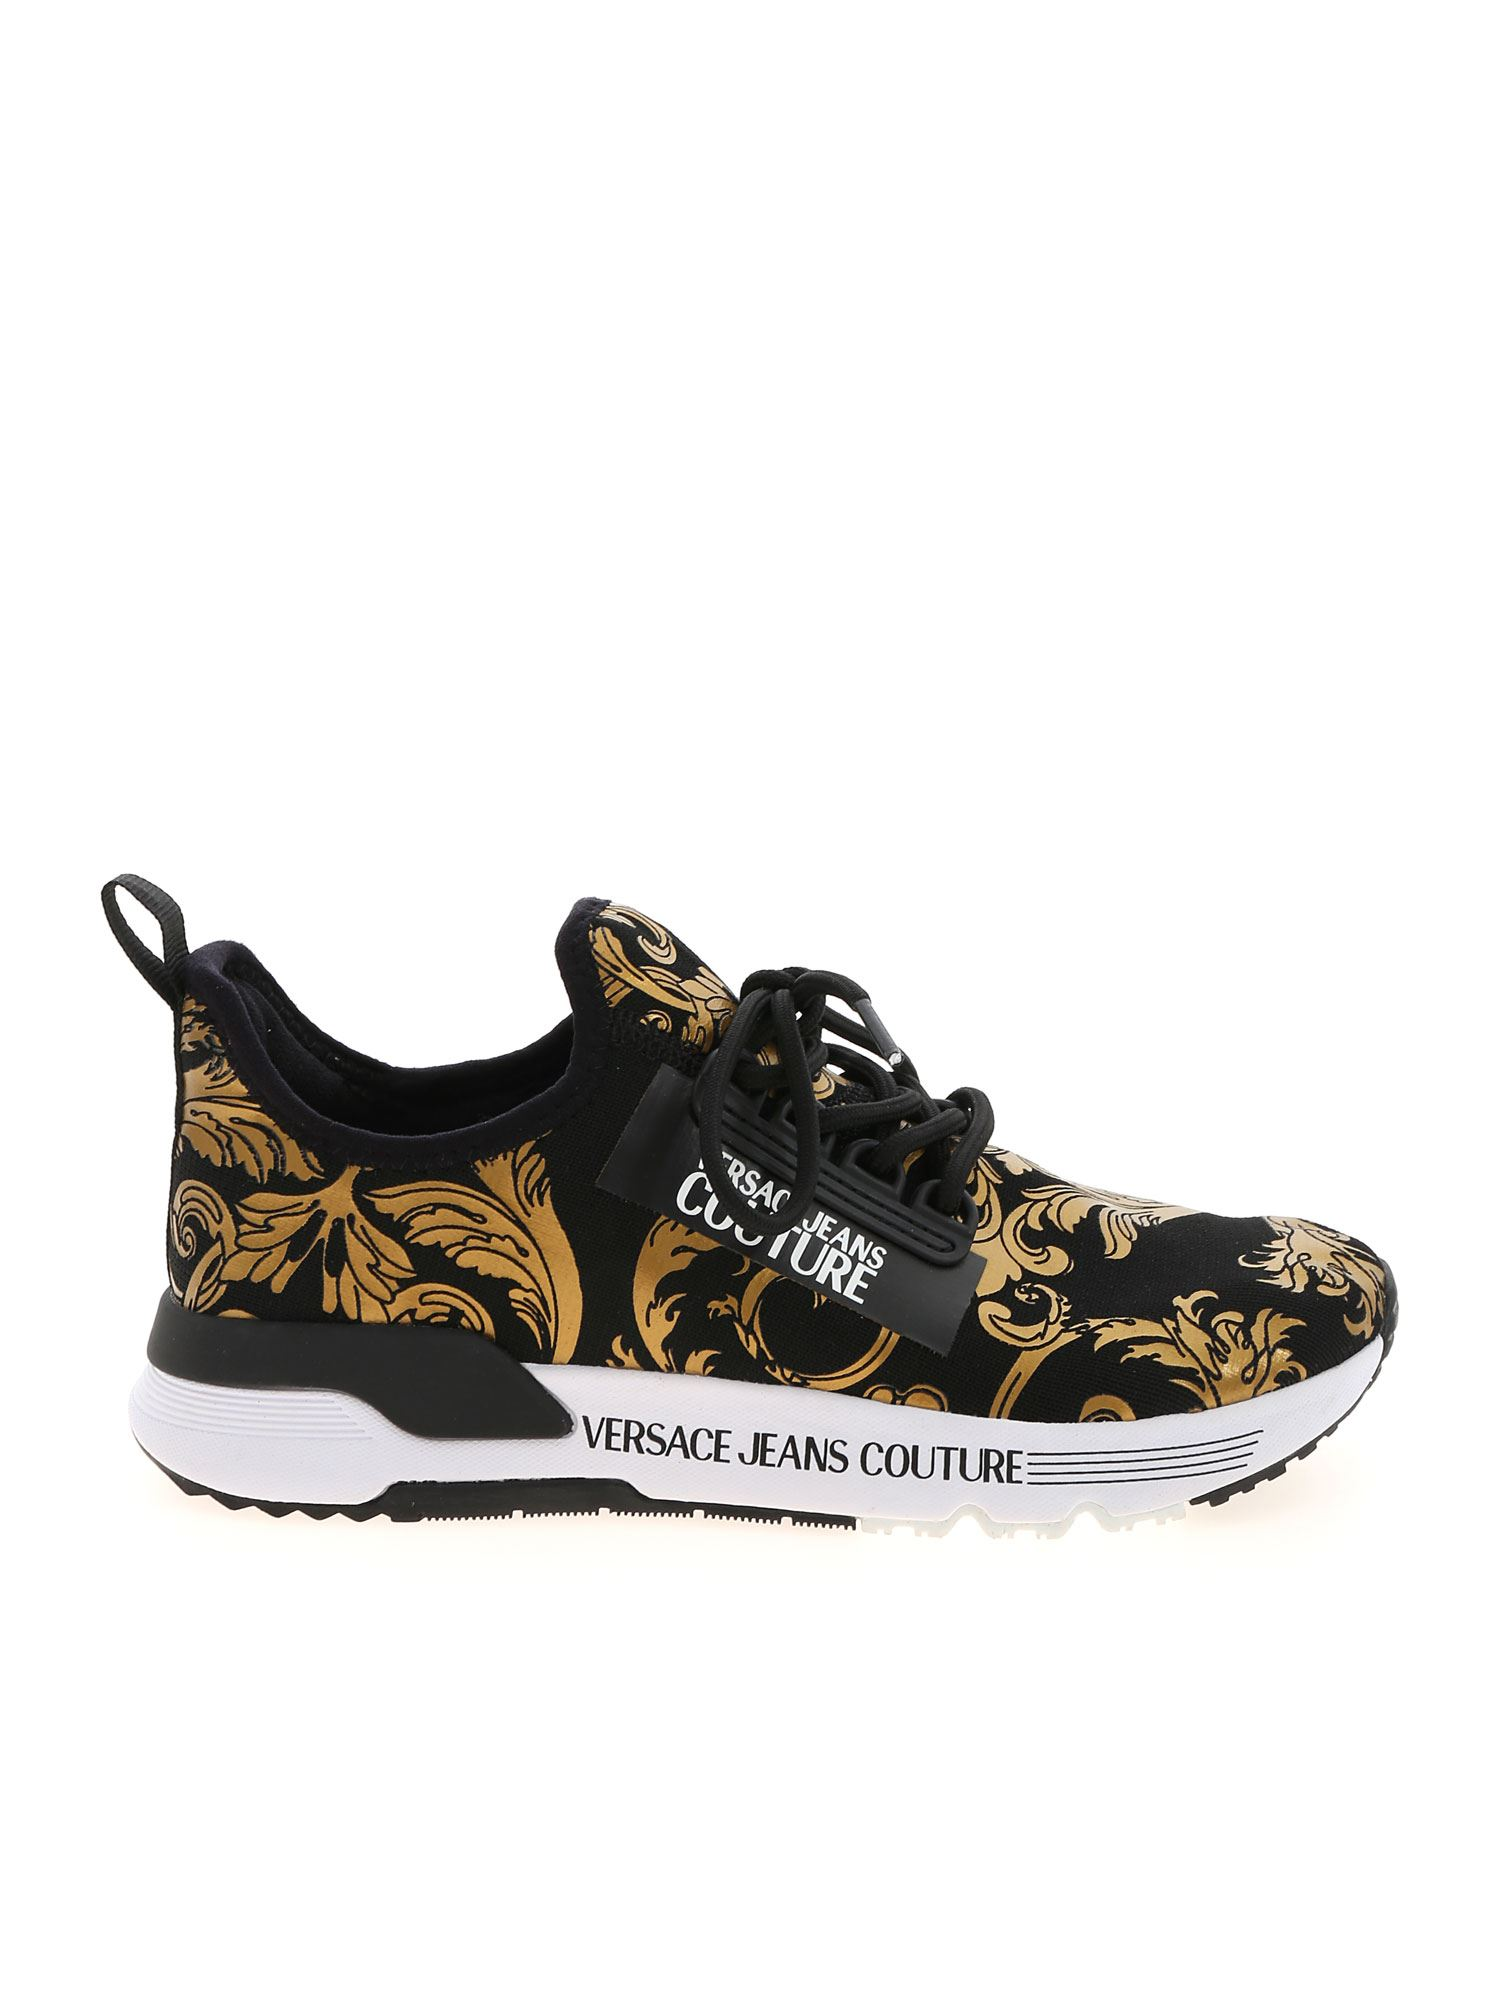 Versace Jeans Couture Sneakers BAROQUE LOGO SNEAKERS IN BLACK